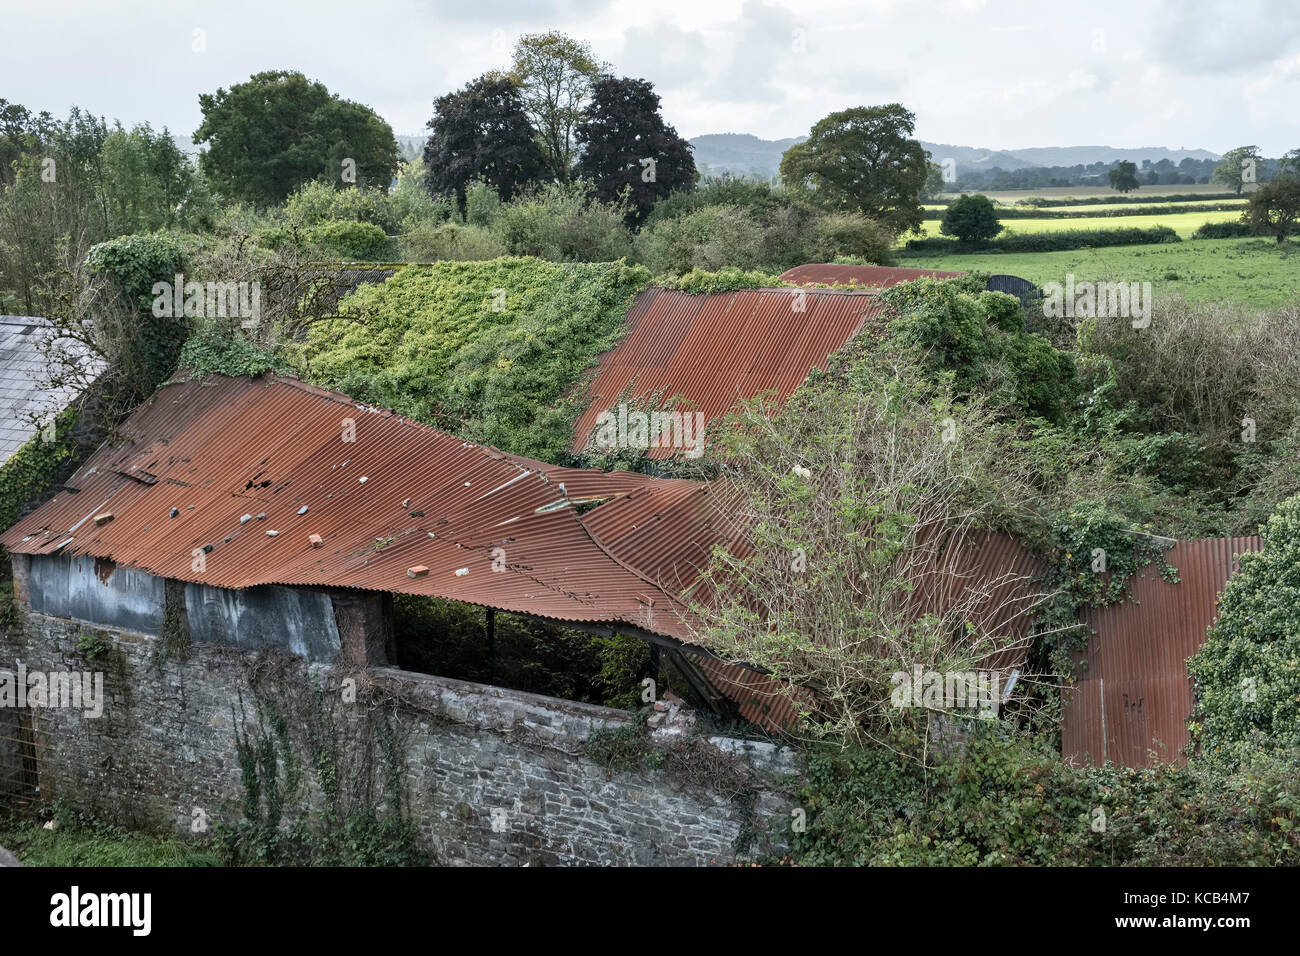 Llandeilo, Carmarthenshire, Wales, UK. Old barns with collapsing corrugated iron roofs overgrown with ivy - Stock Image